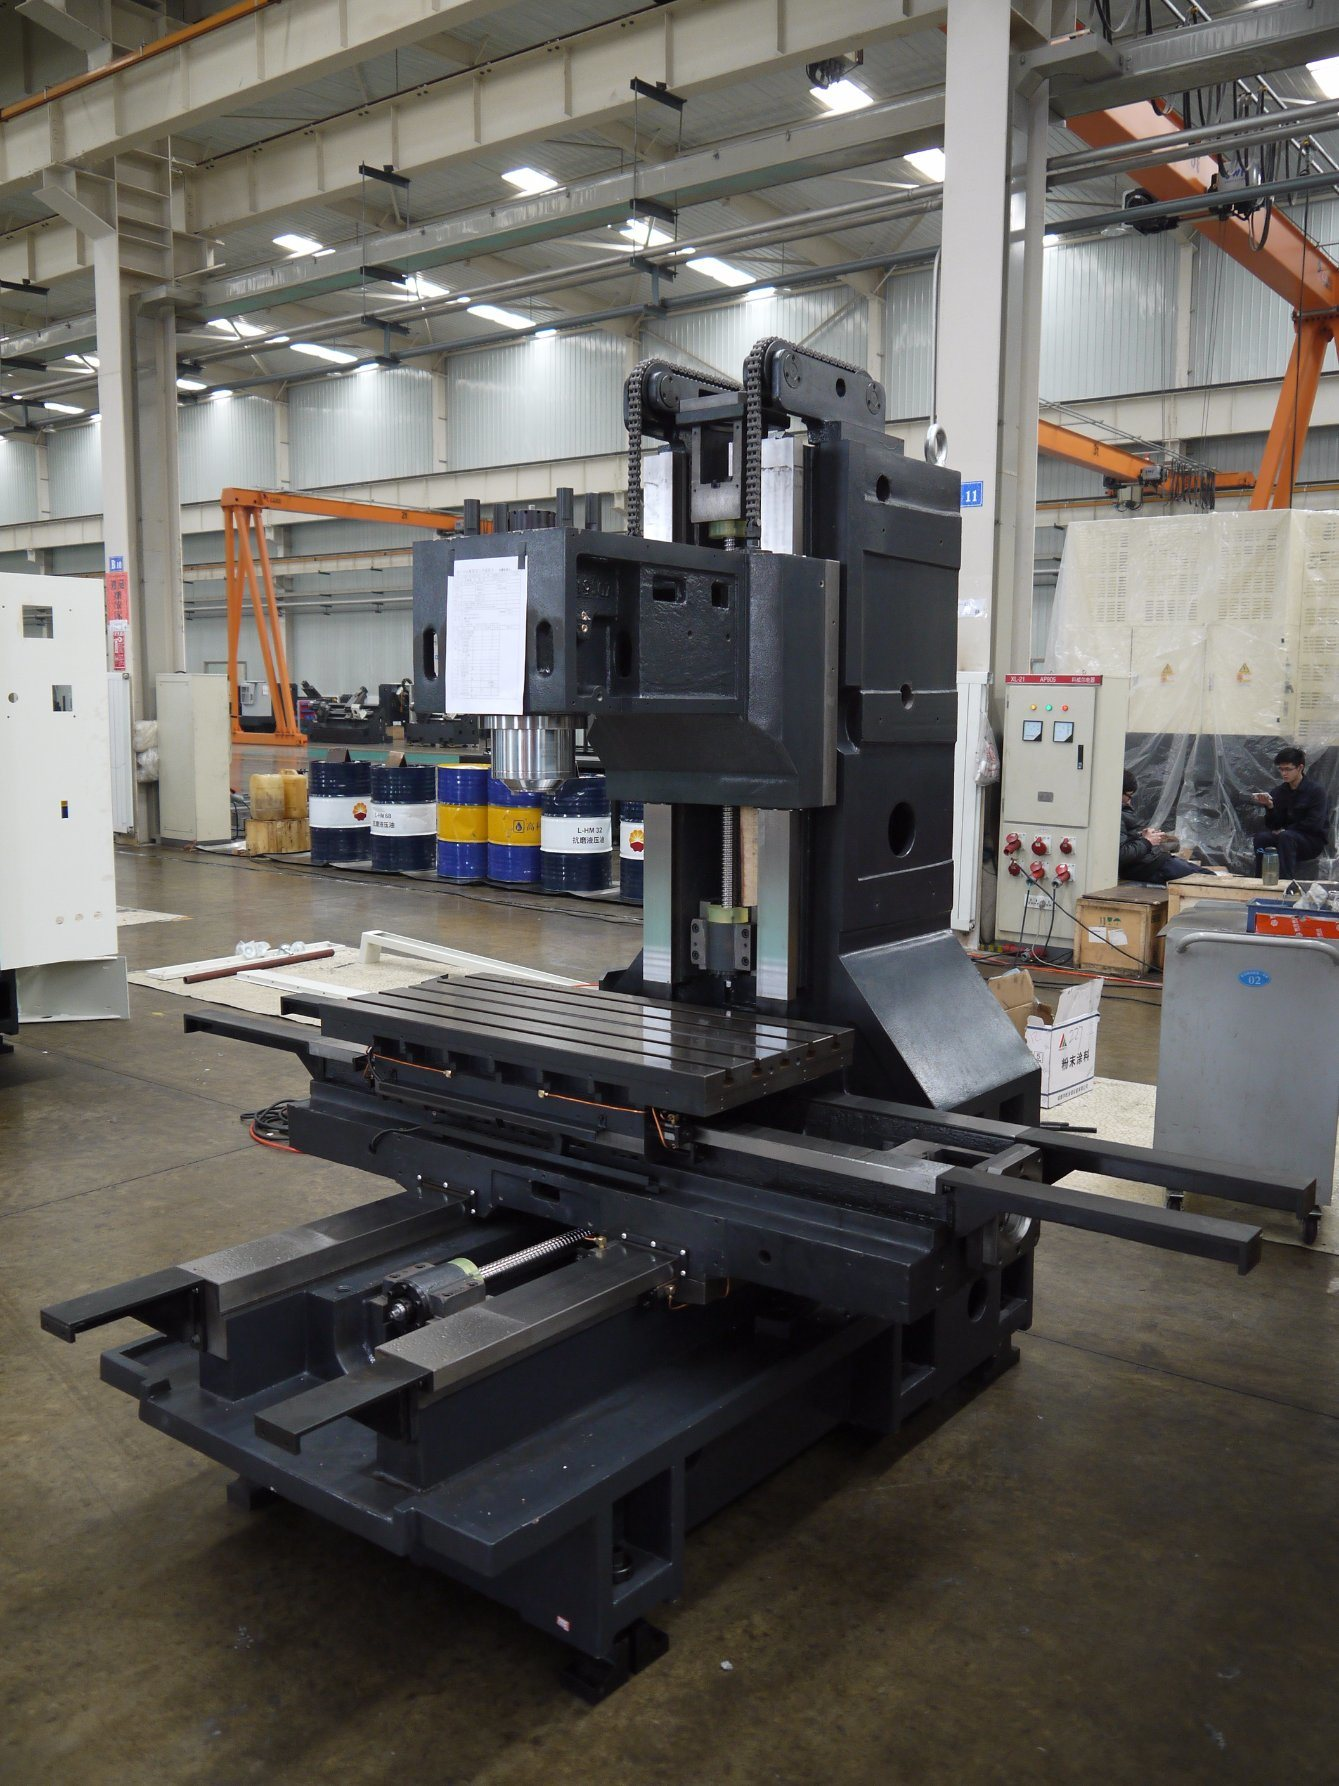 Vmc650L, Vmc850L, Vmc1060L Machining Center